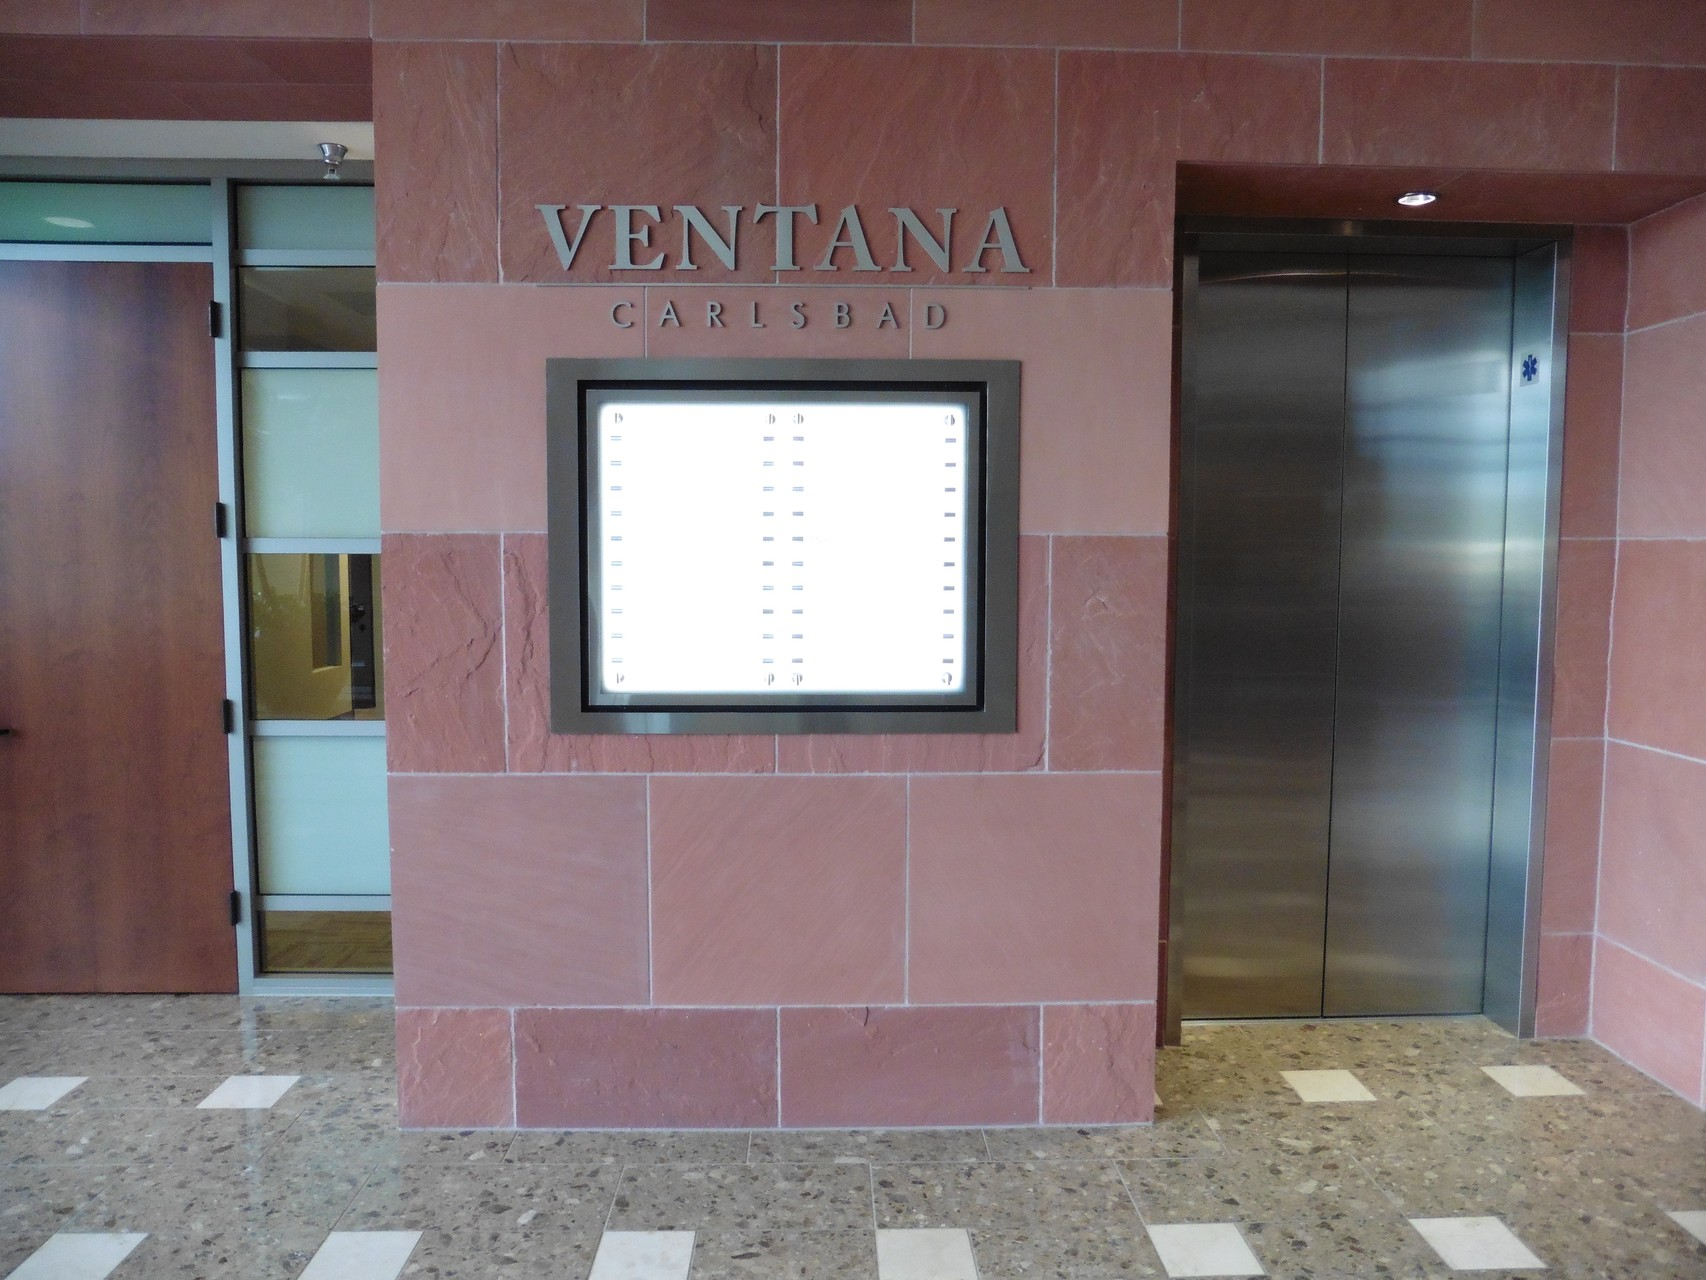 Illuminated Directory with Stainless Steel Elements